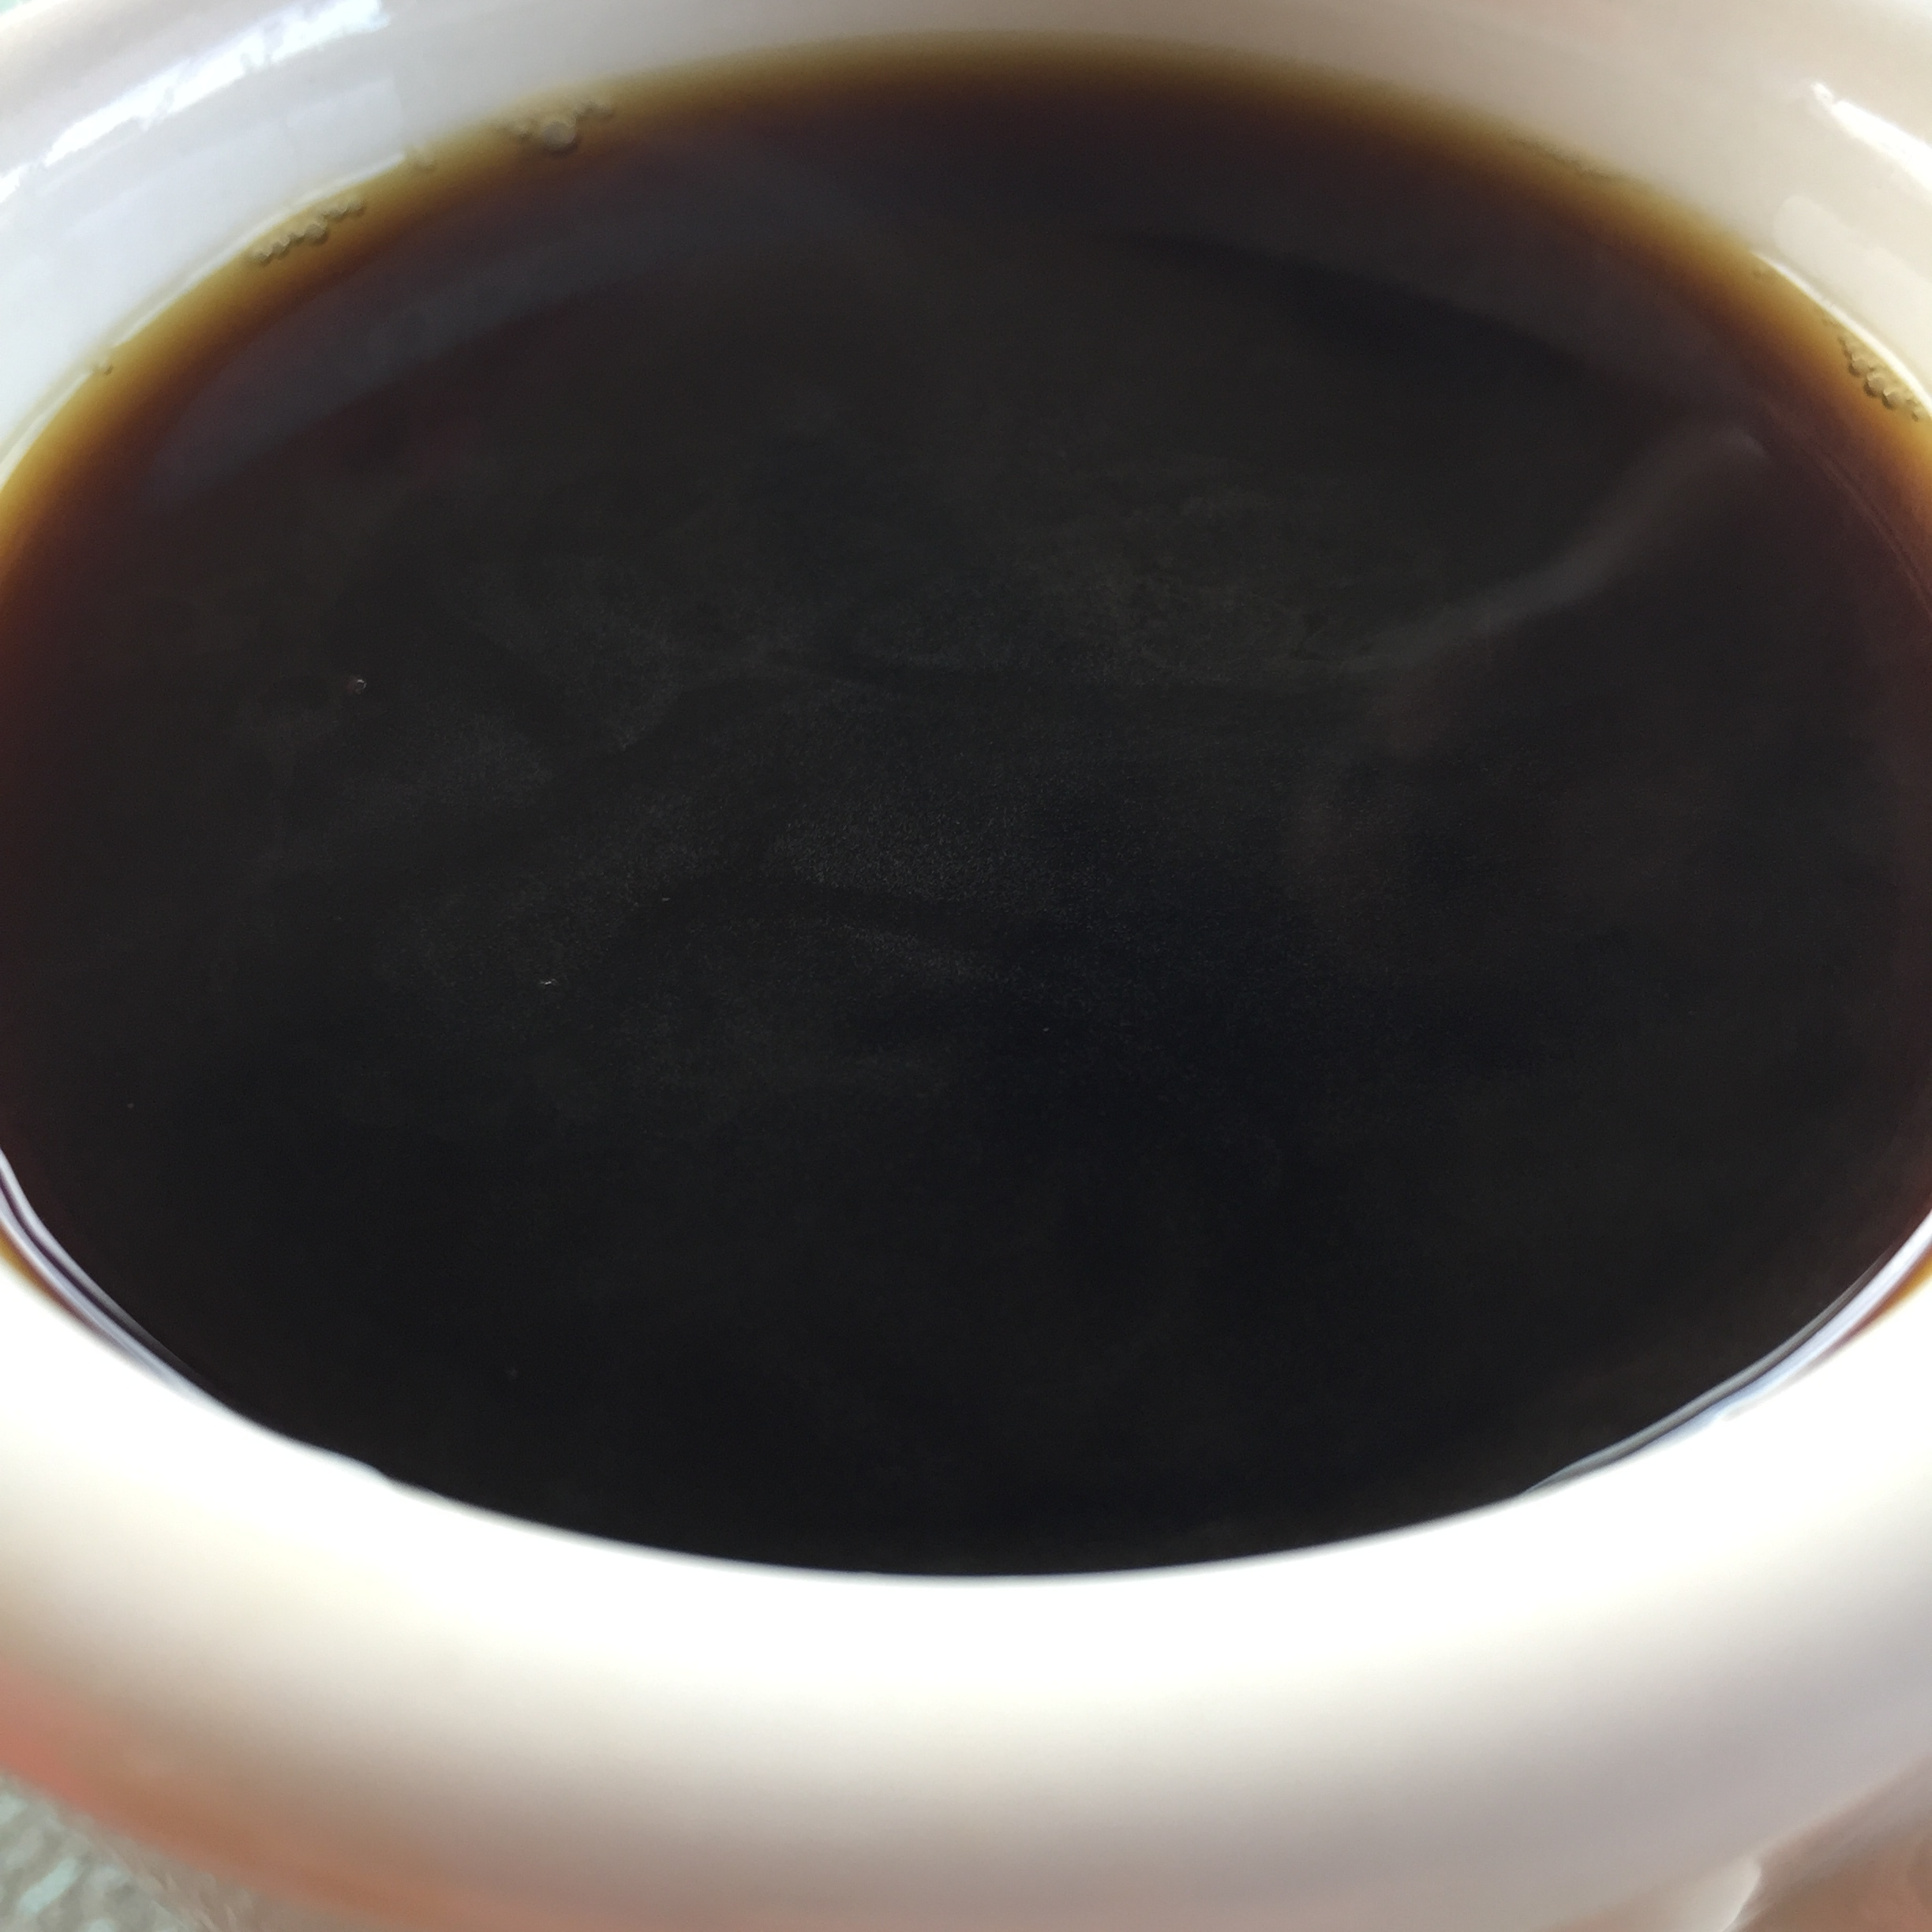 Delicious visible oils on the surface and just a really pleasant, sweet, and balanced cup of coffee.